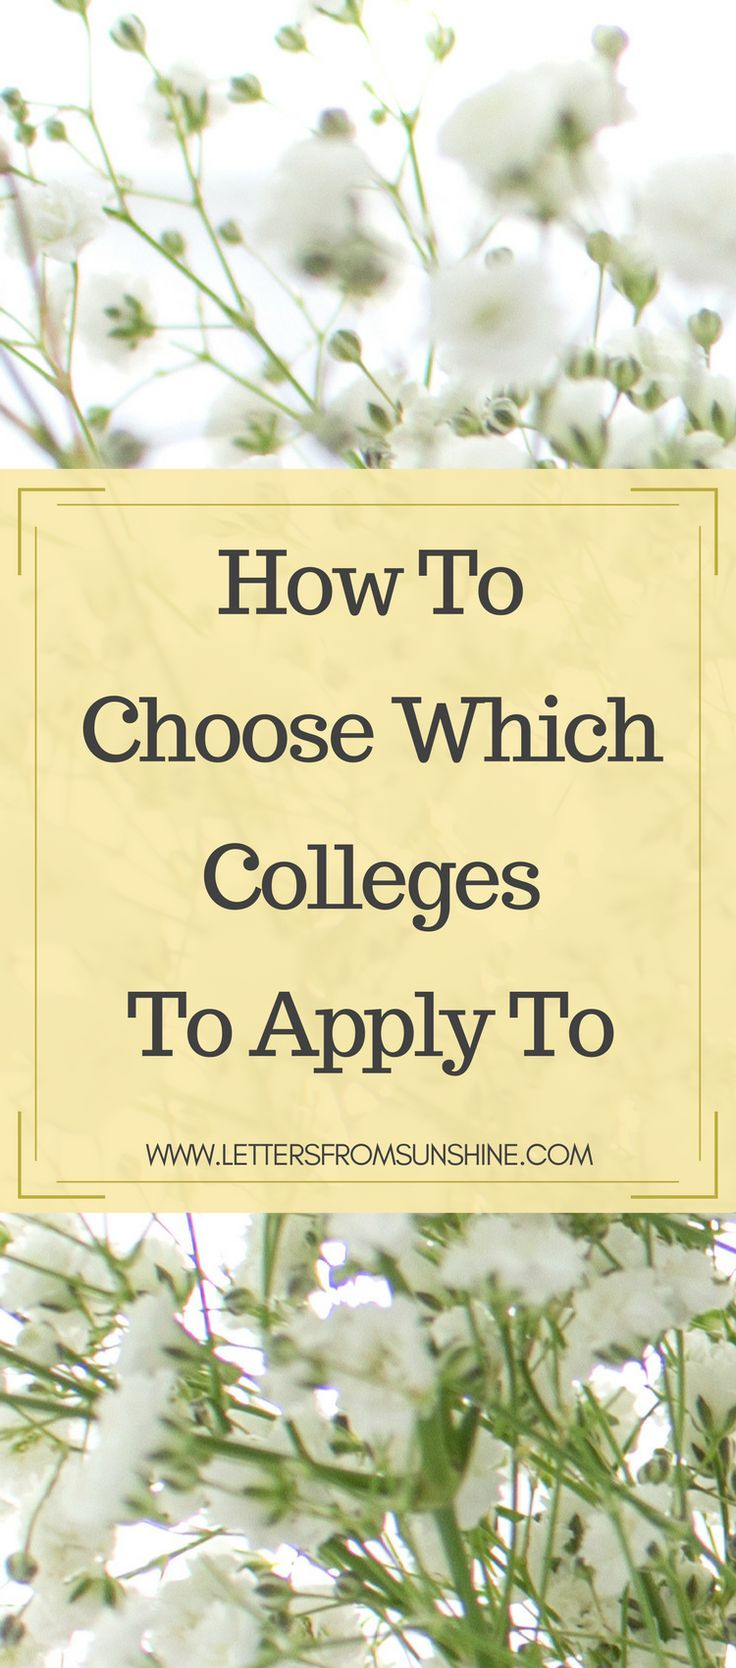 Applying to college can be very overwhelming. You have different people telling you to focus on different things, making it hard to focus on what factors are truly important to you in your college search. If you're still trying to figure out what those factors are, or even what they mean then be sure to check out this post from Letters From Sunshine for some guidance on how to choose which colleges to apply to so that you can ultimately choose the college that is the perfect fit for you…